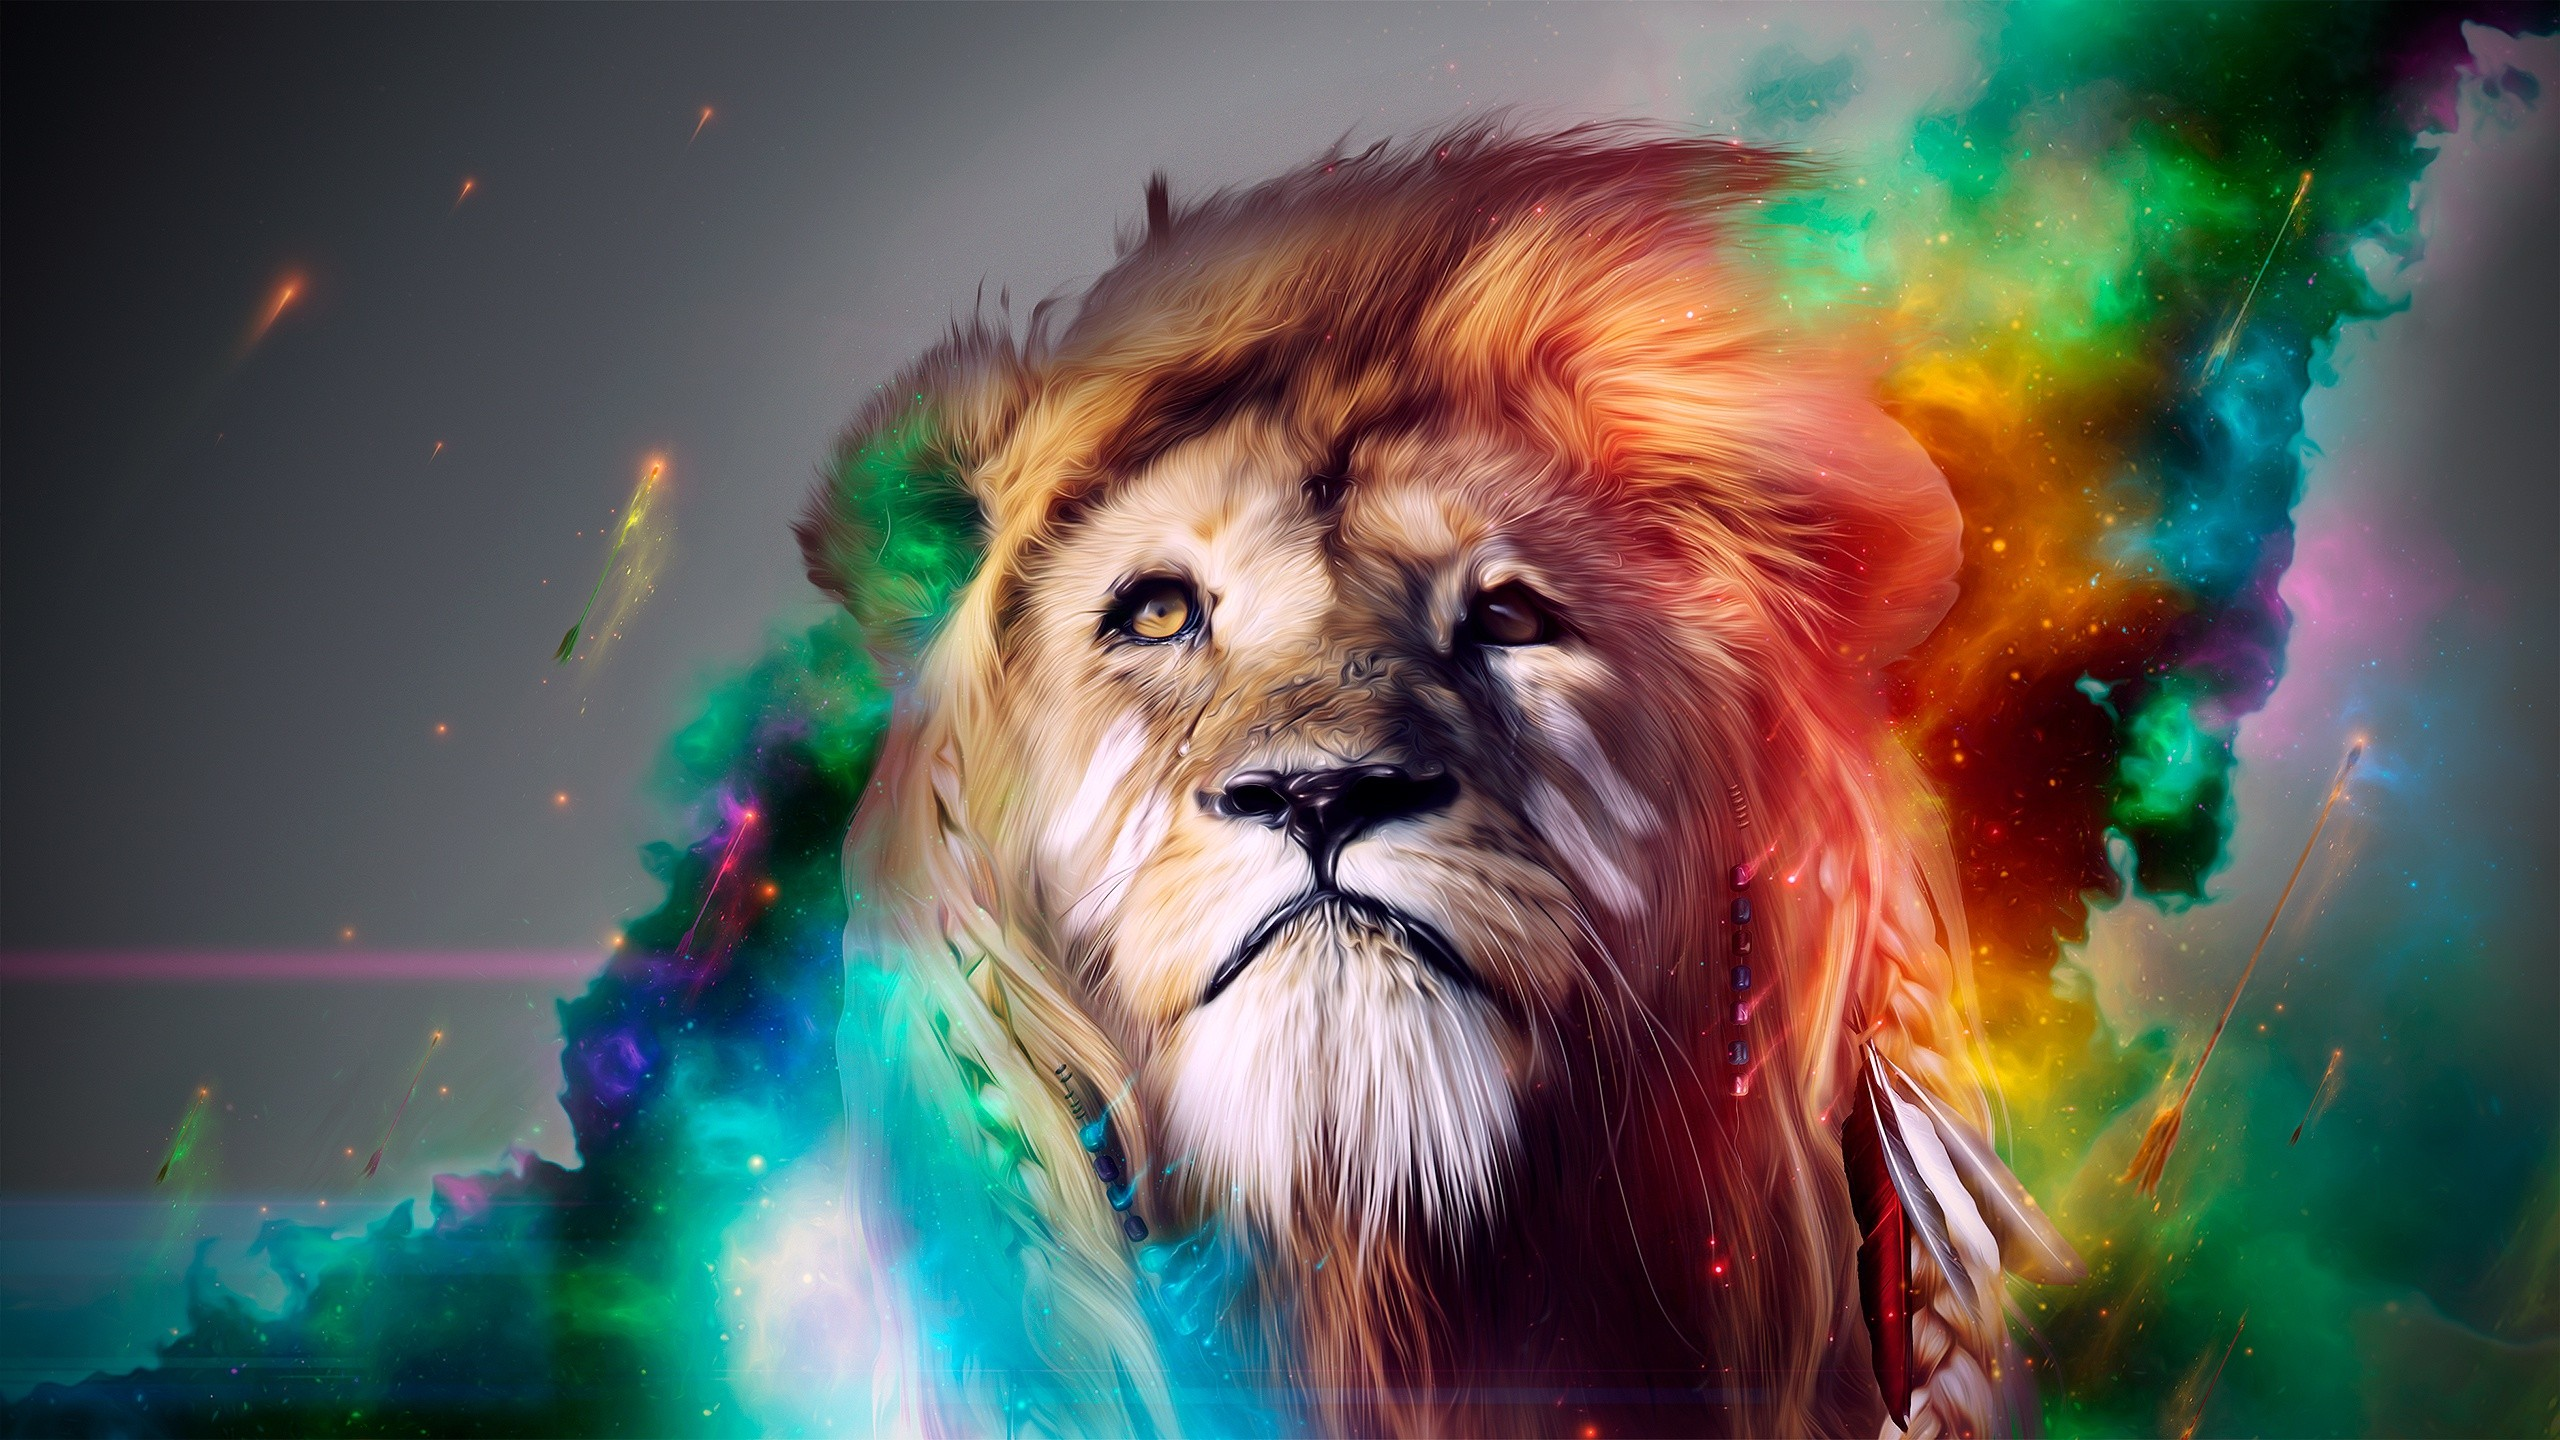 Lion Background